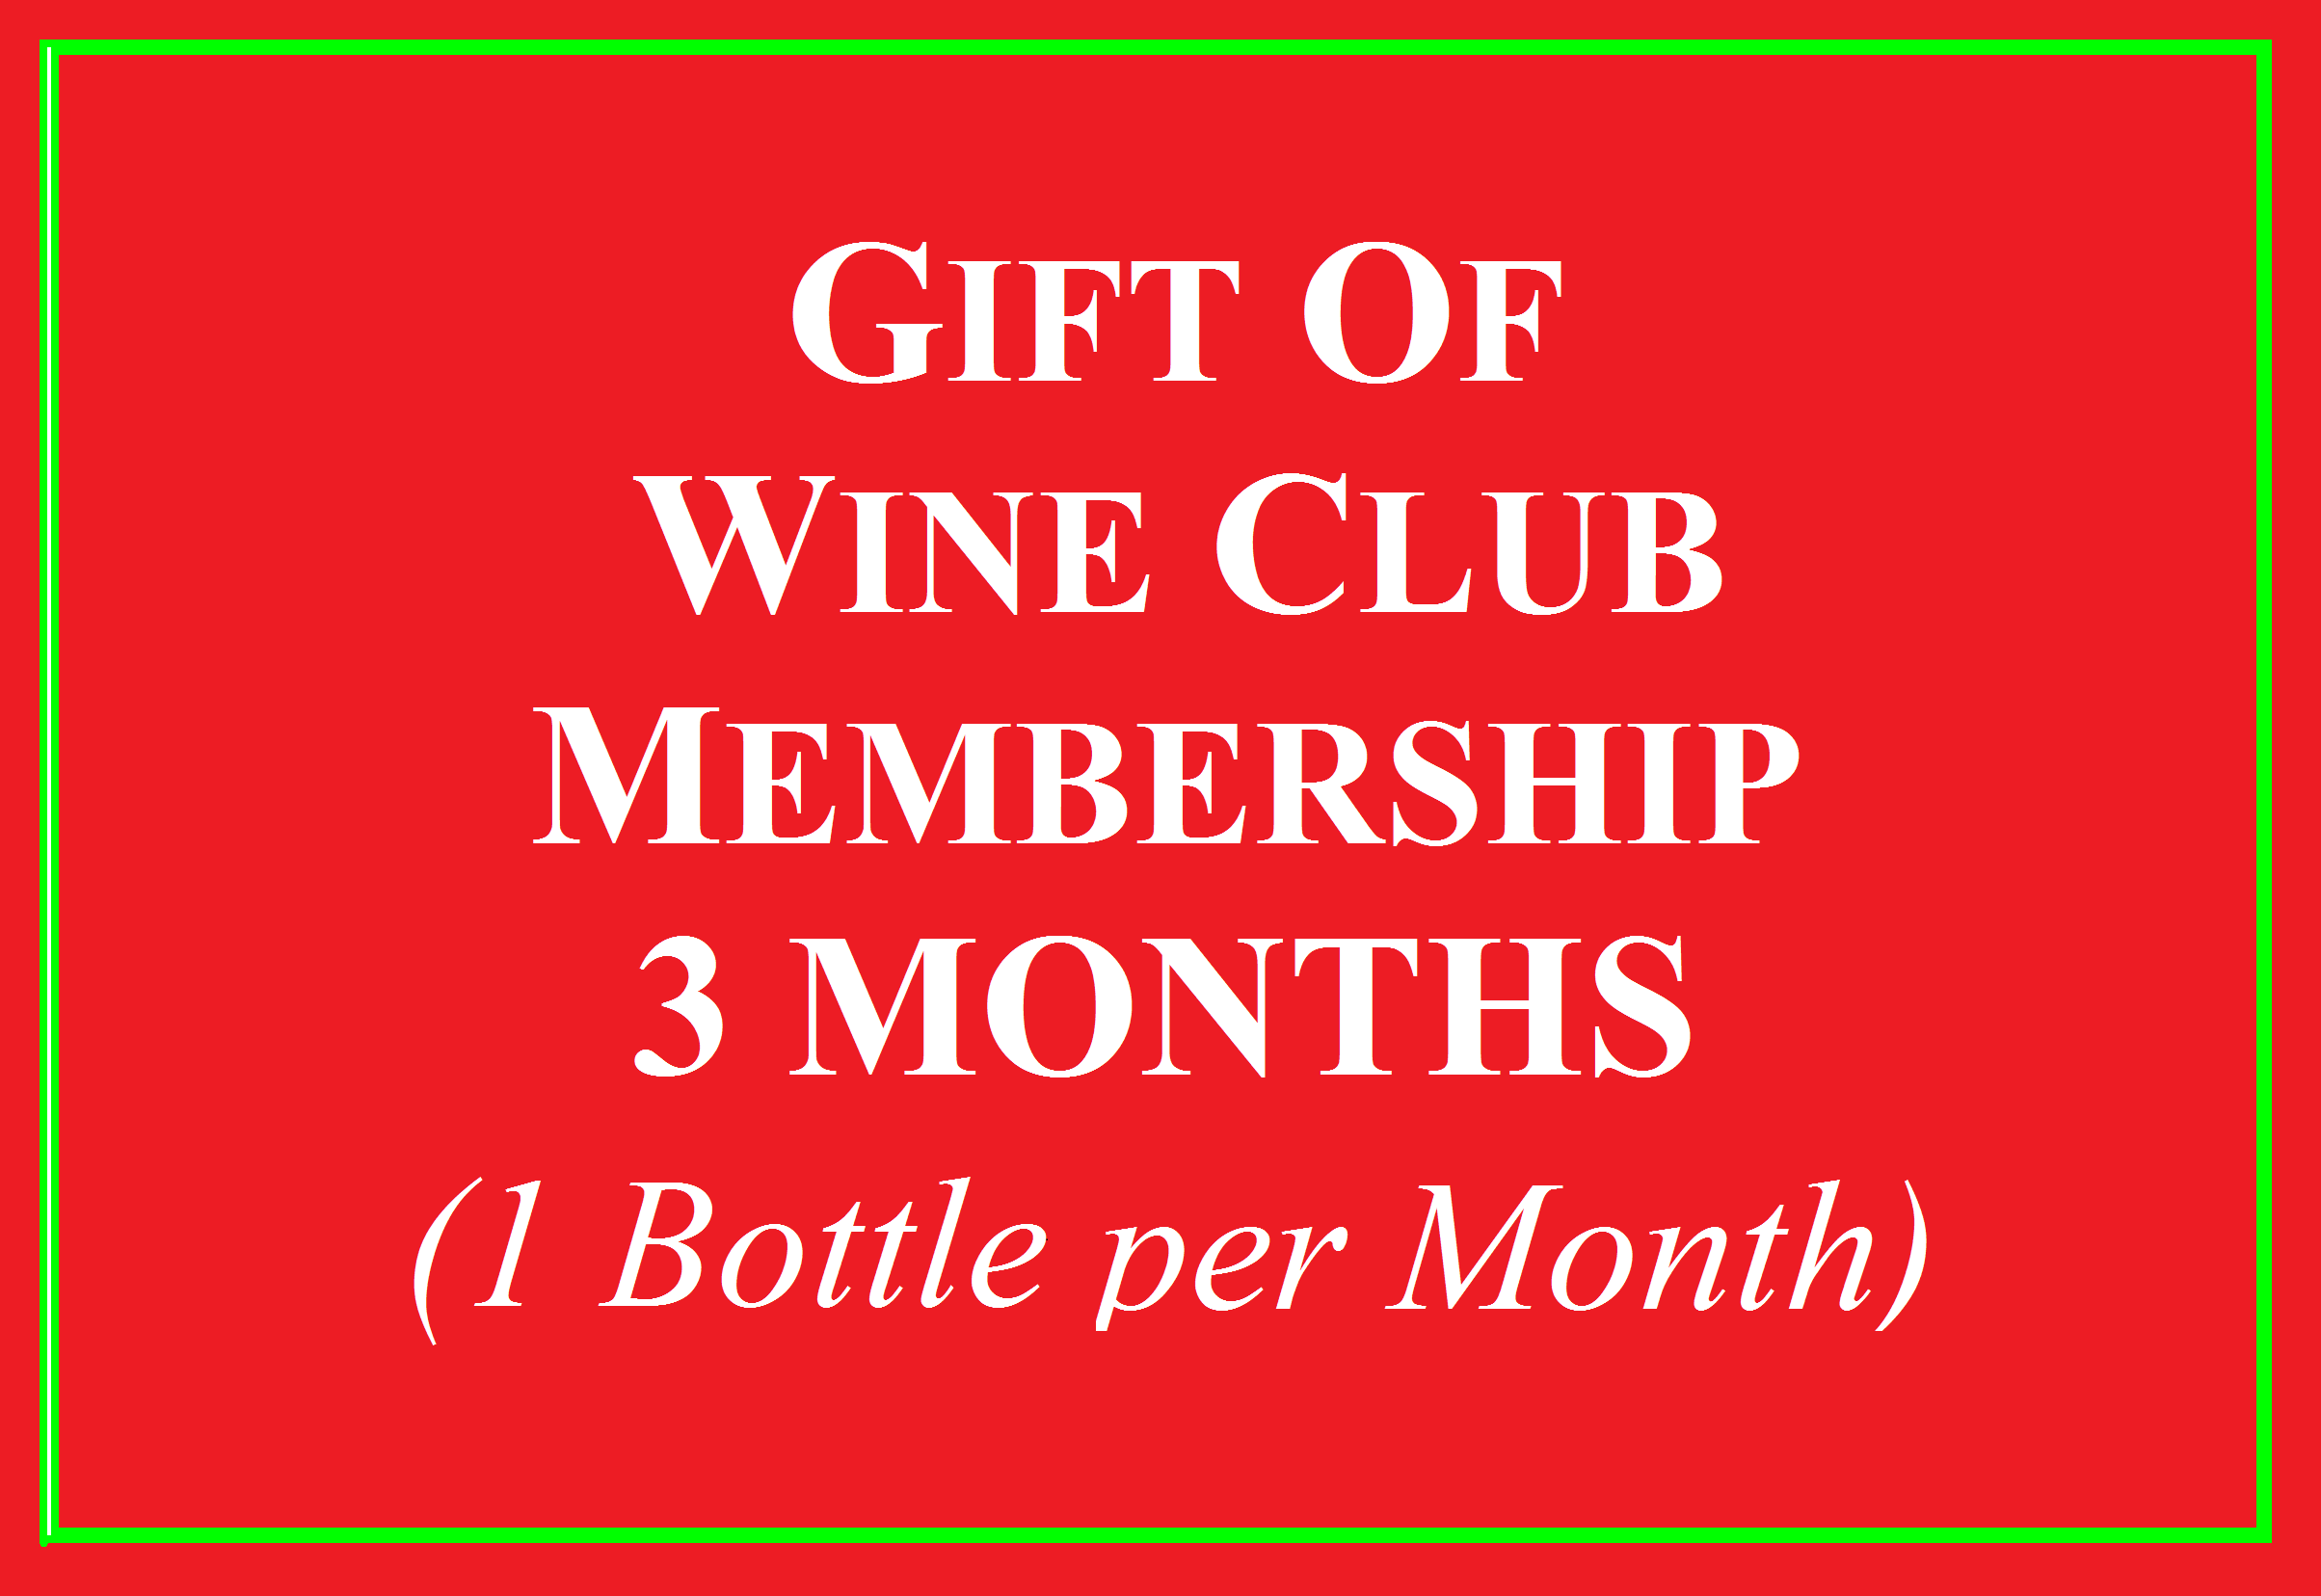 Wine Club Gift for 3 Months 1 Bottle Photo